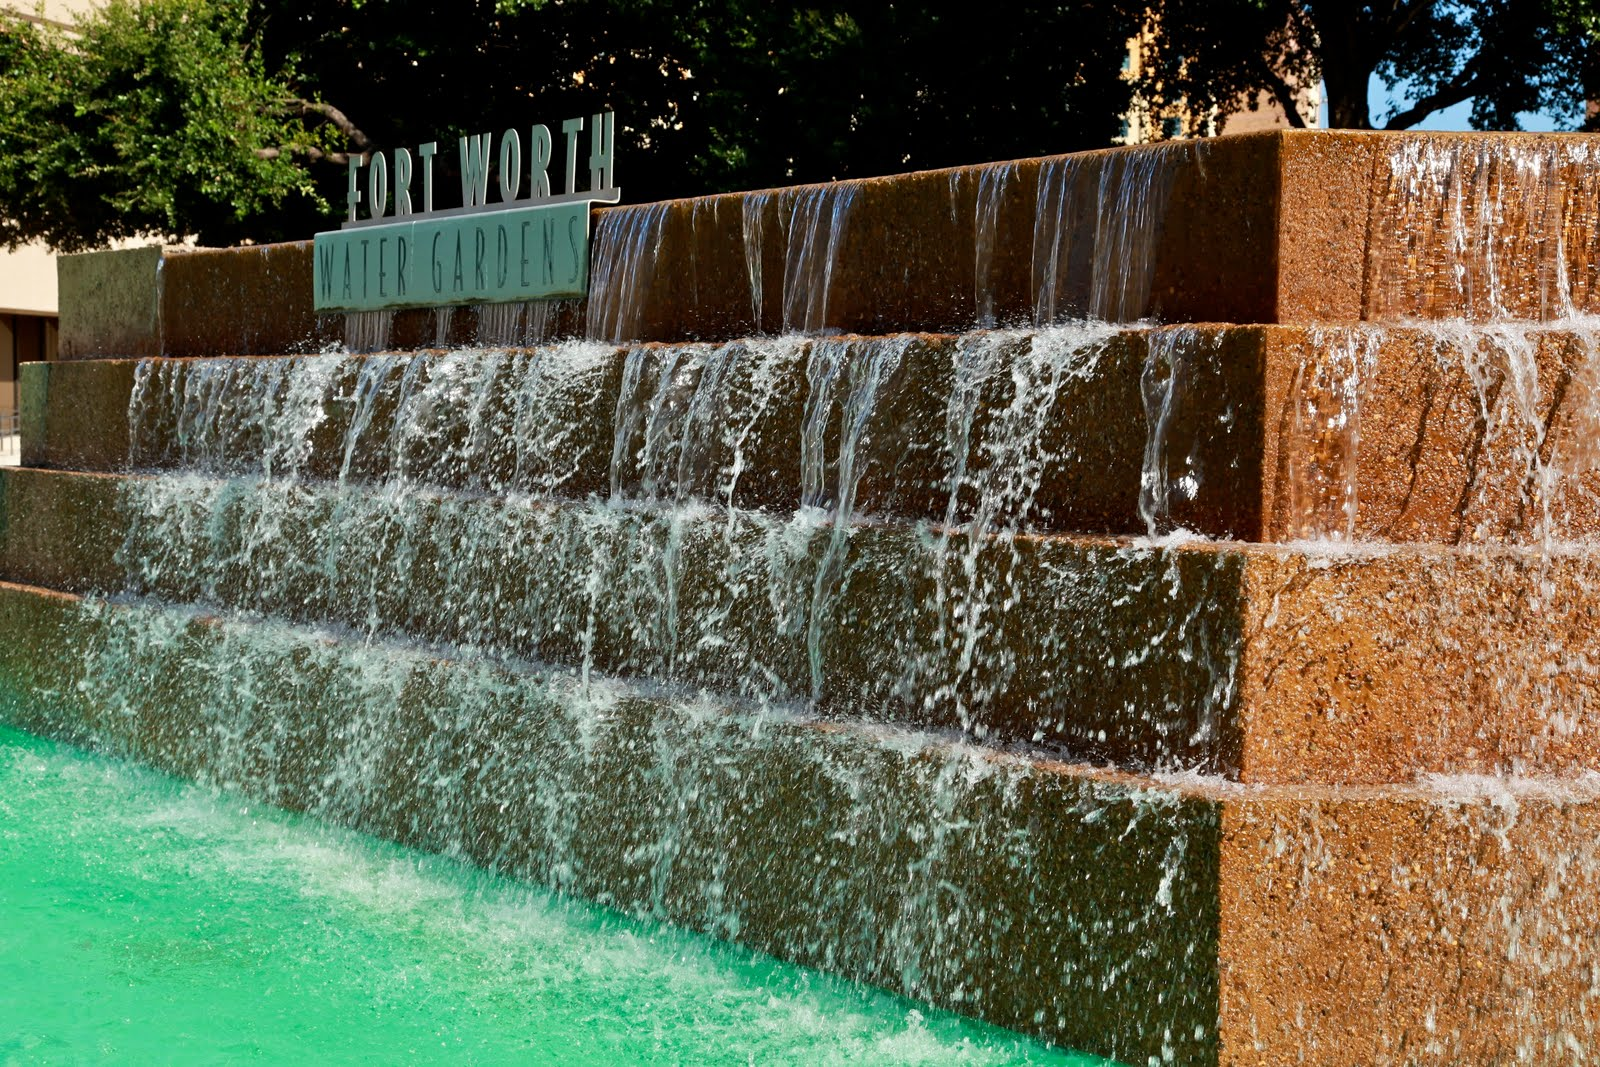 Bayside Ramblings: Fort Worth Water Gardens